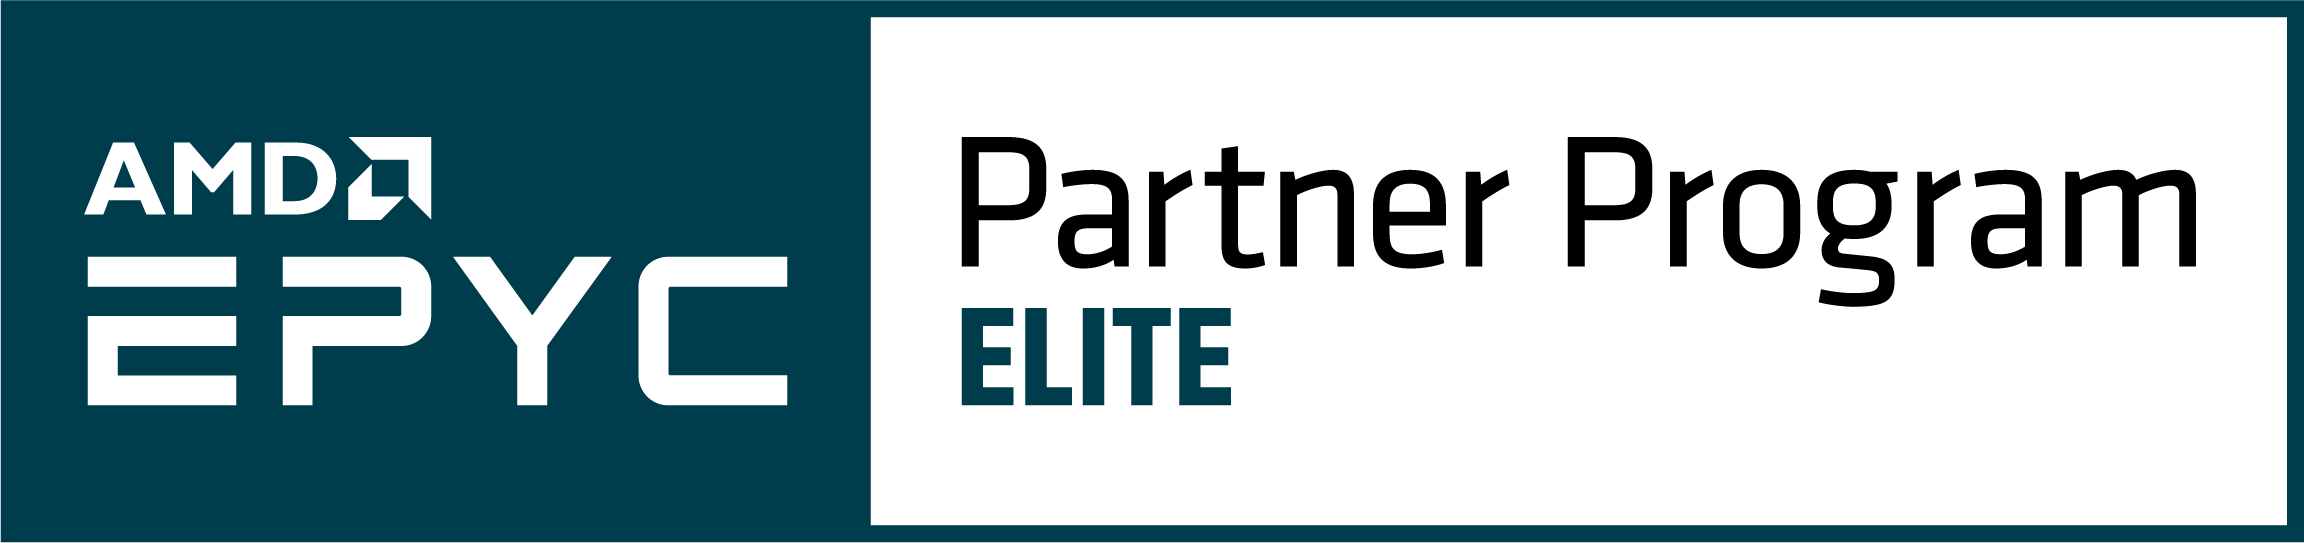 AMD EPYC™ ELITE PARTNER